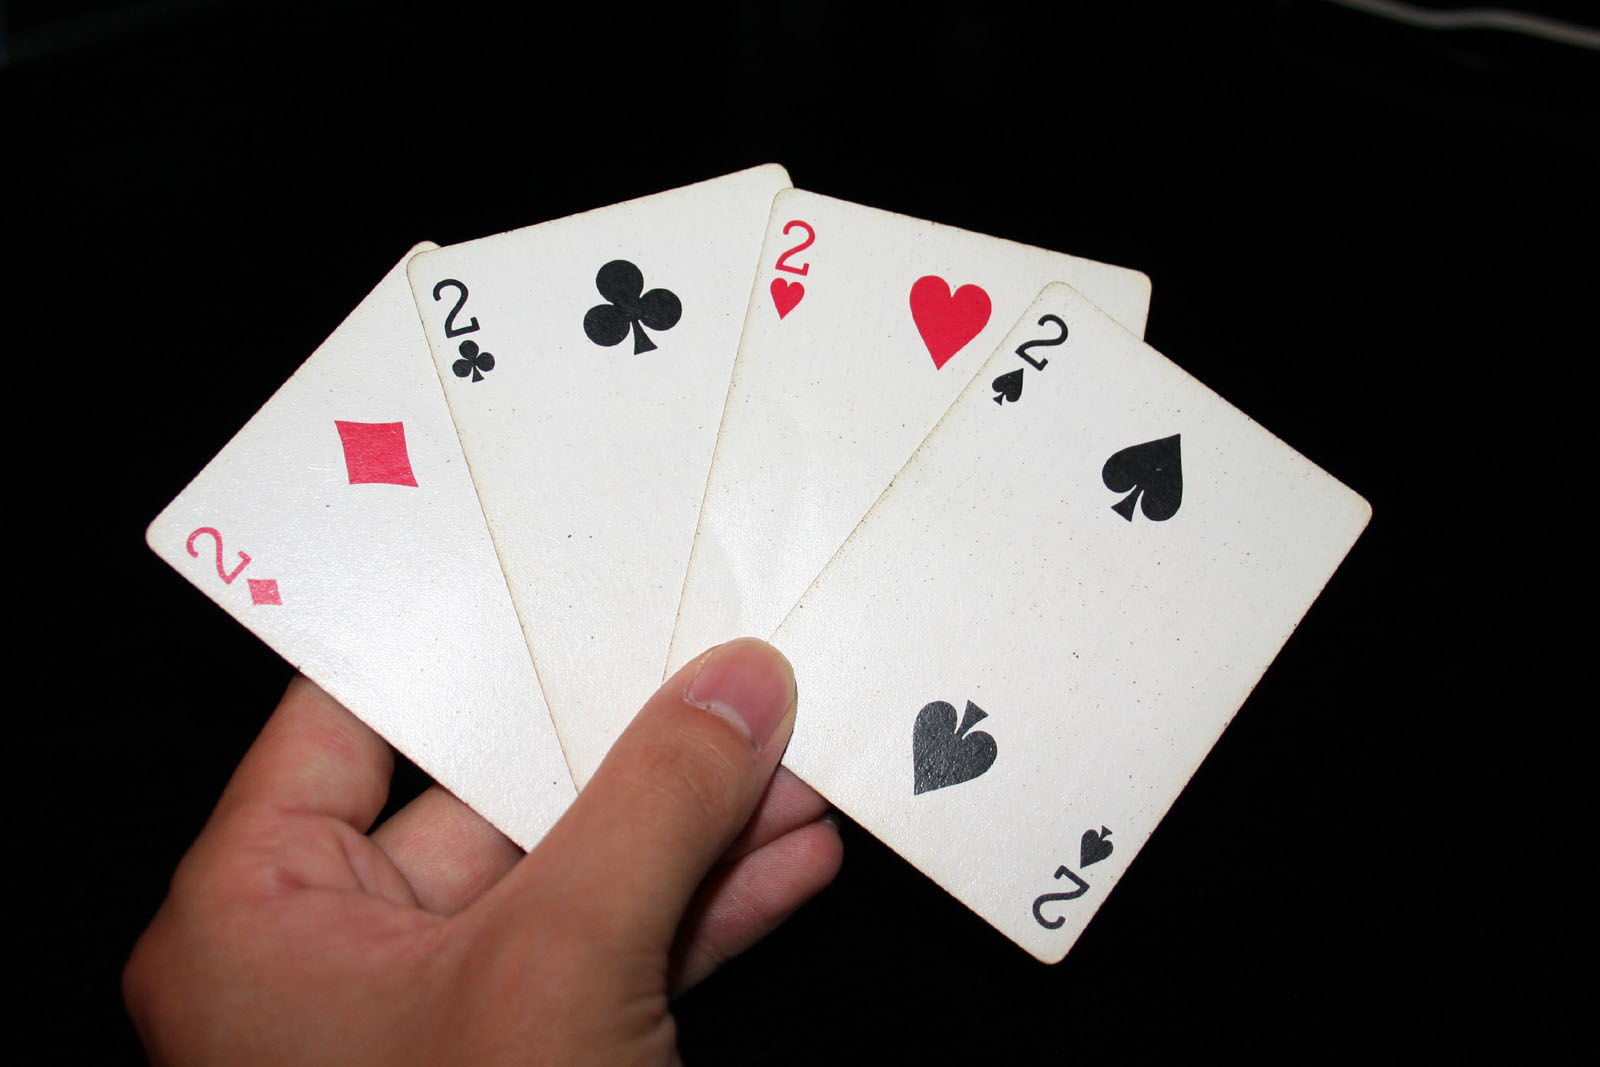 File:2 playing cards.jpg - Wikipedia